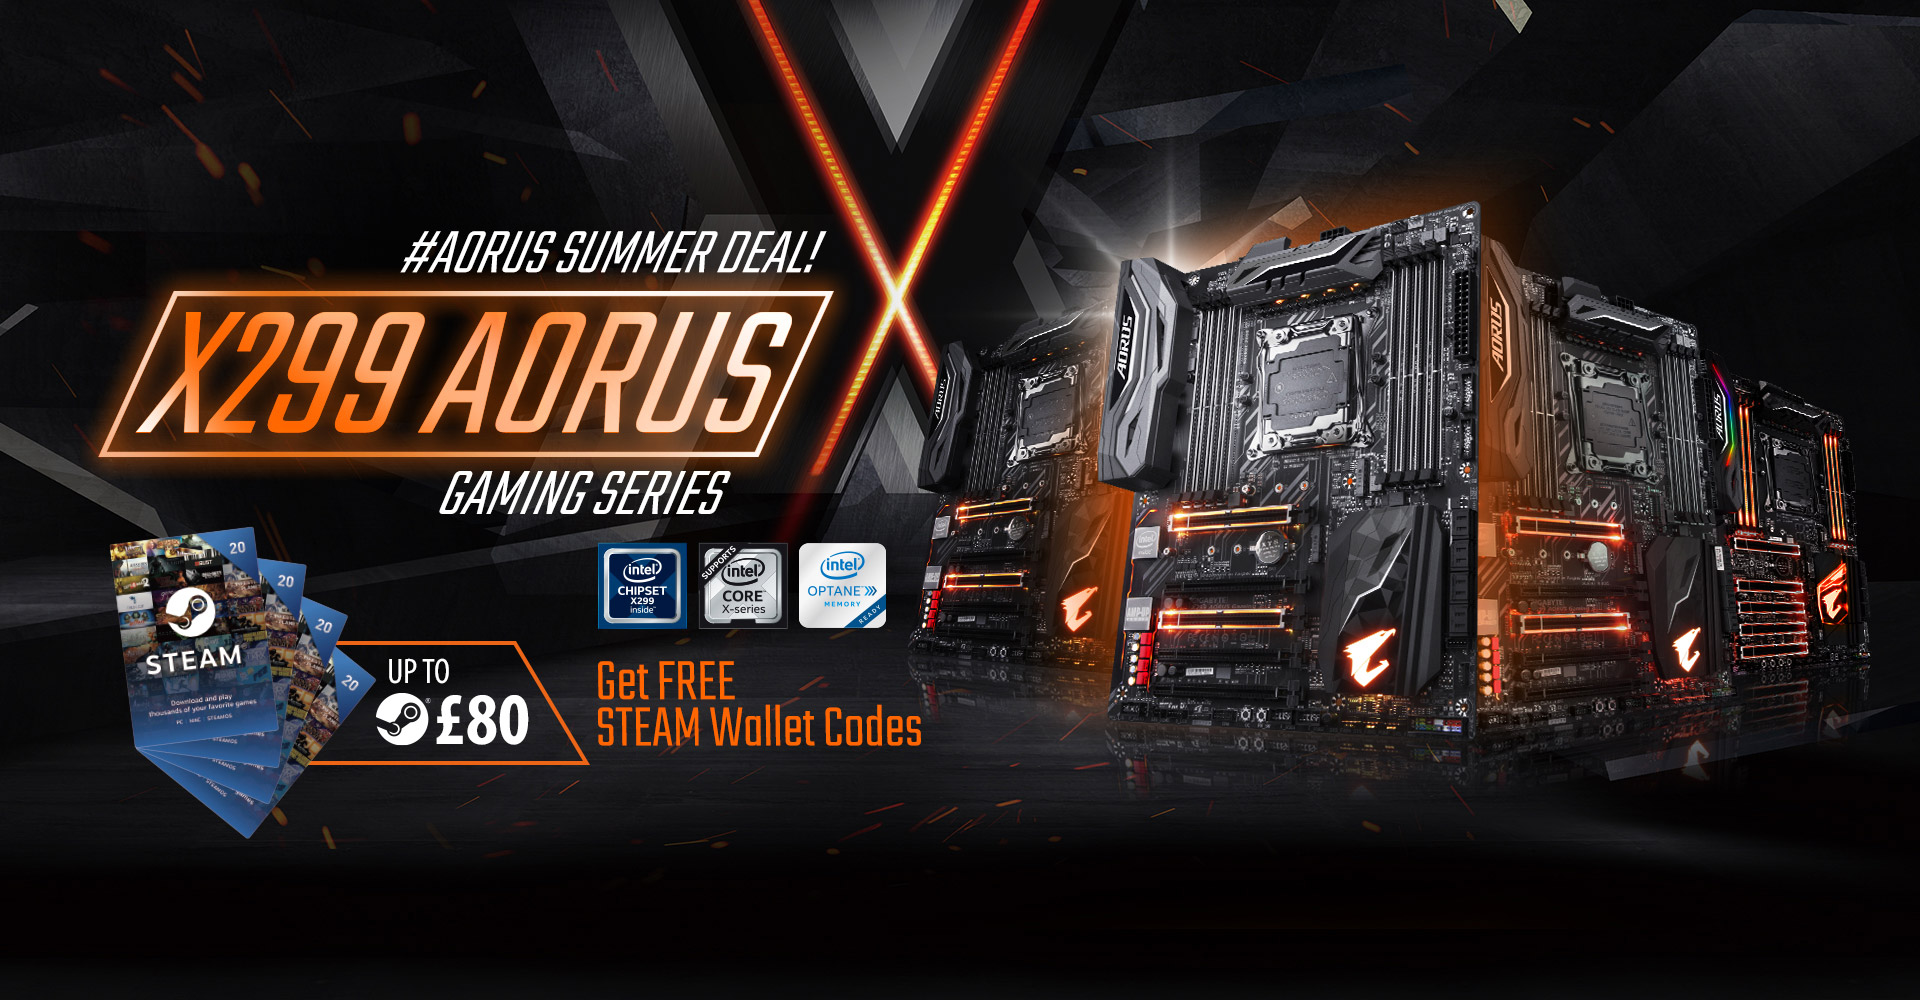 Buy Gigabyte Aorus X299 And Get Up To 80 Steam Wallet Codes 20 Purchase Any Of The New Brand Motherboards For Intel Core X Processors Receive Free